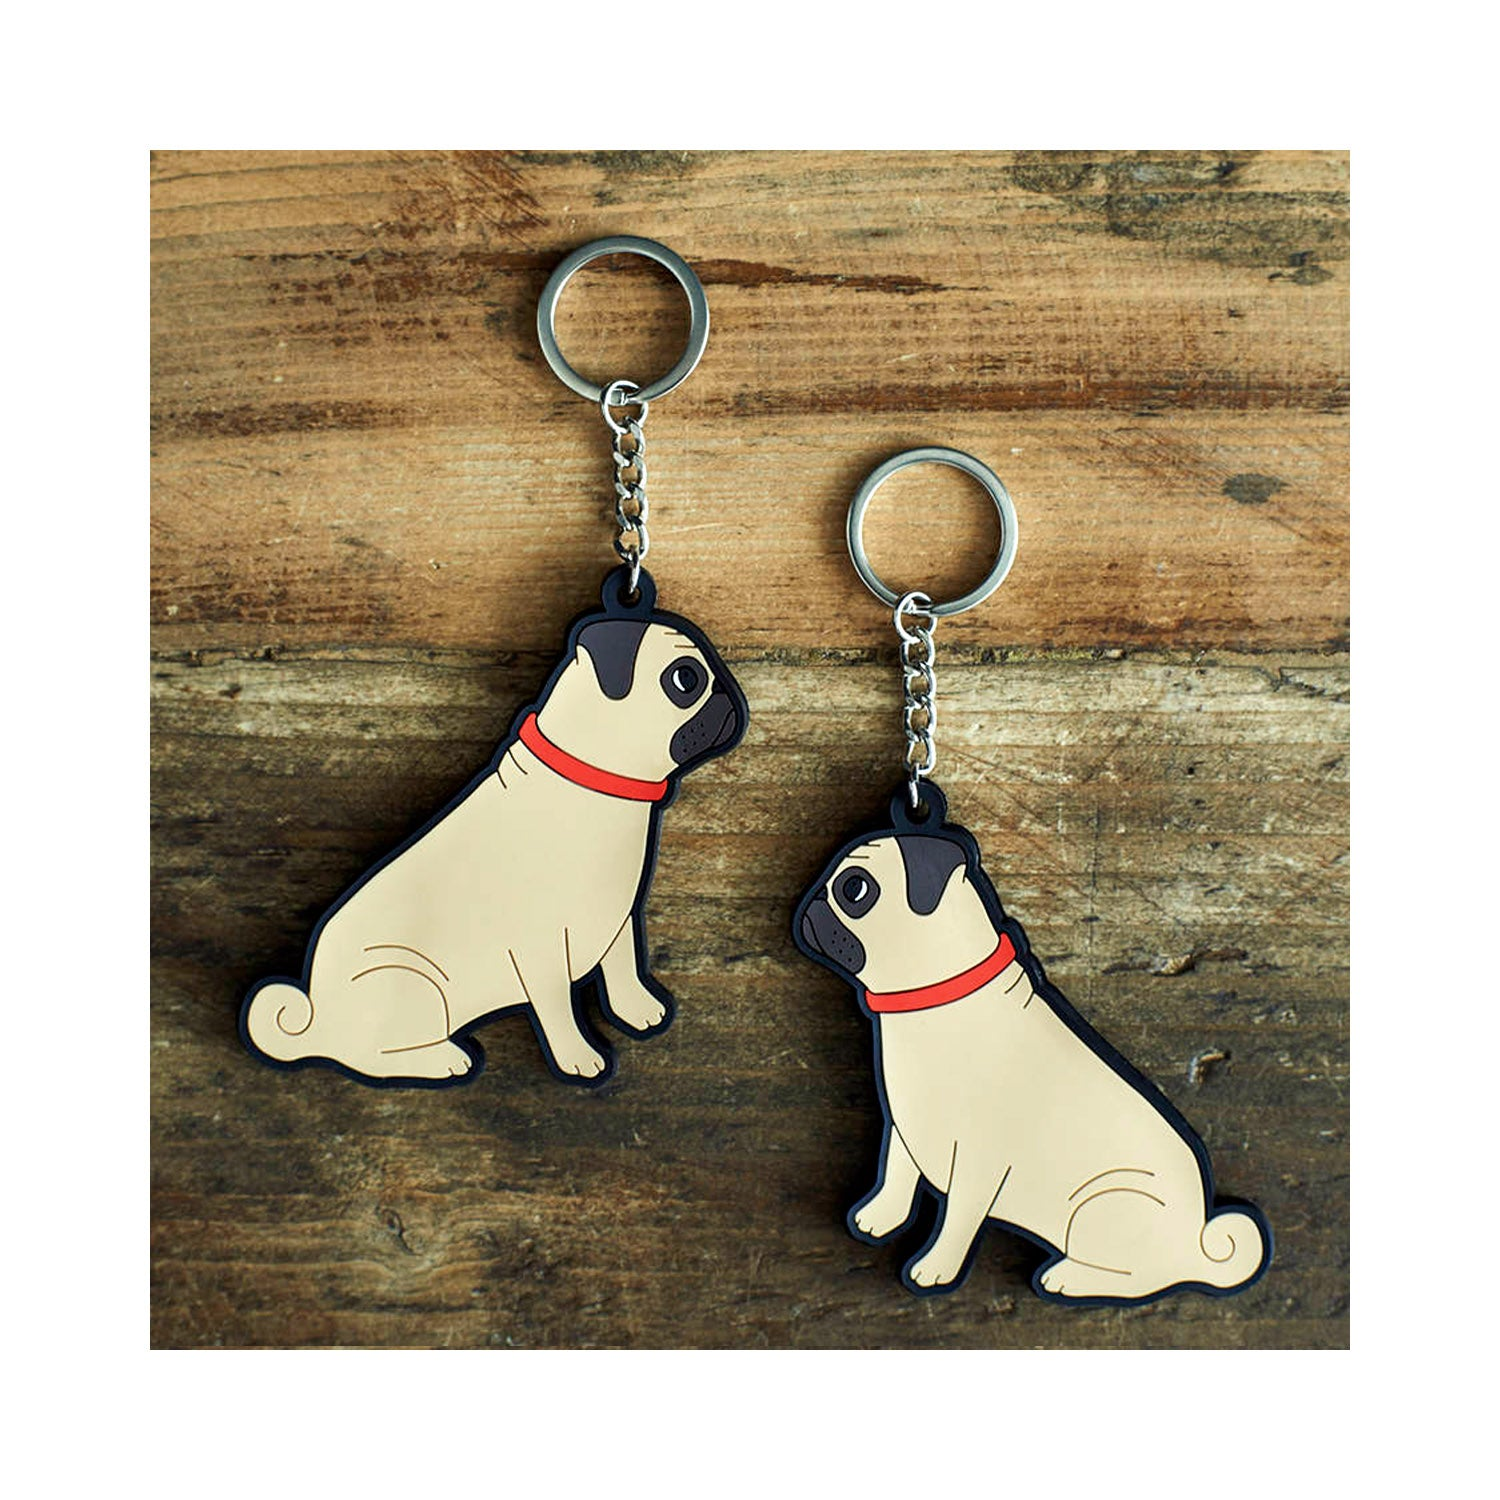 Dog Lover Gifts available at Dog Krazy Gifts - Winston The Fawn Pug Keyring - part of the Sweet William range available from Dog Krazy Gifts